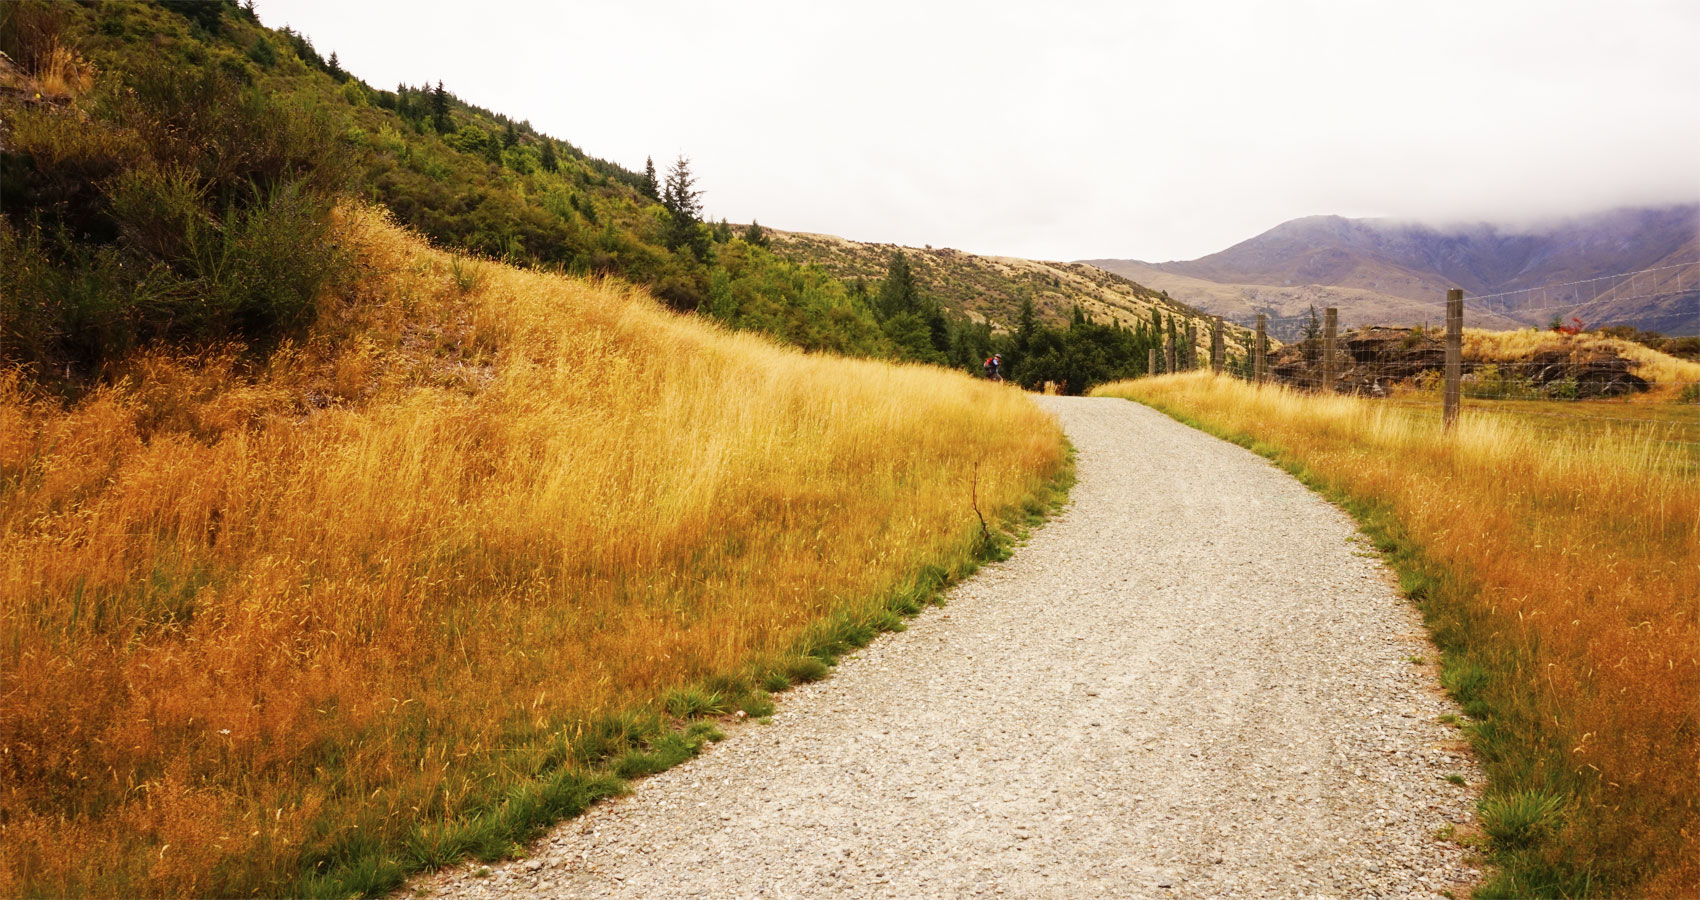 Gravel Roads And Fields of Grass written by TM Arko at Spillwords.com